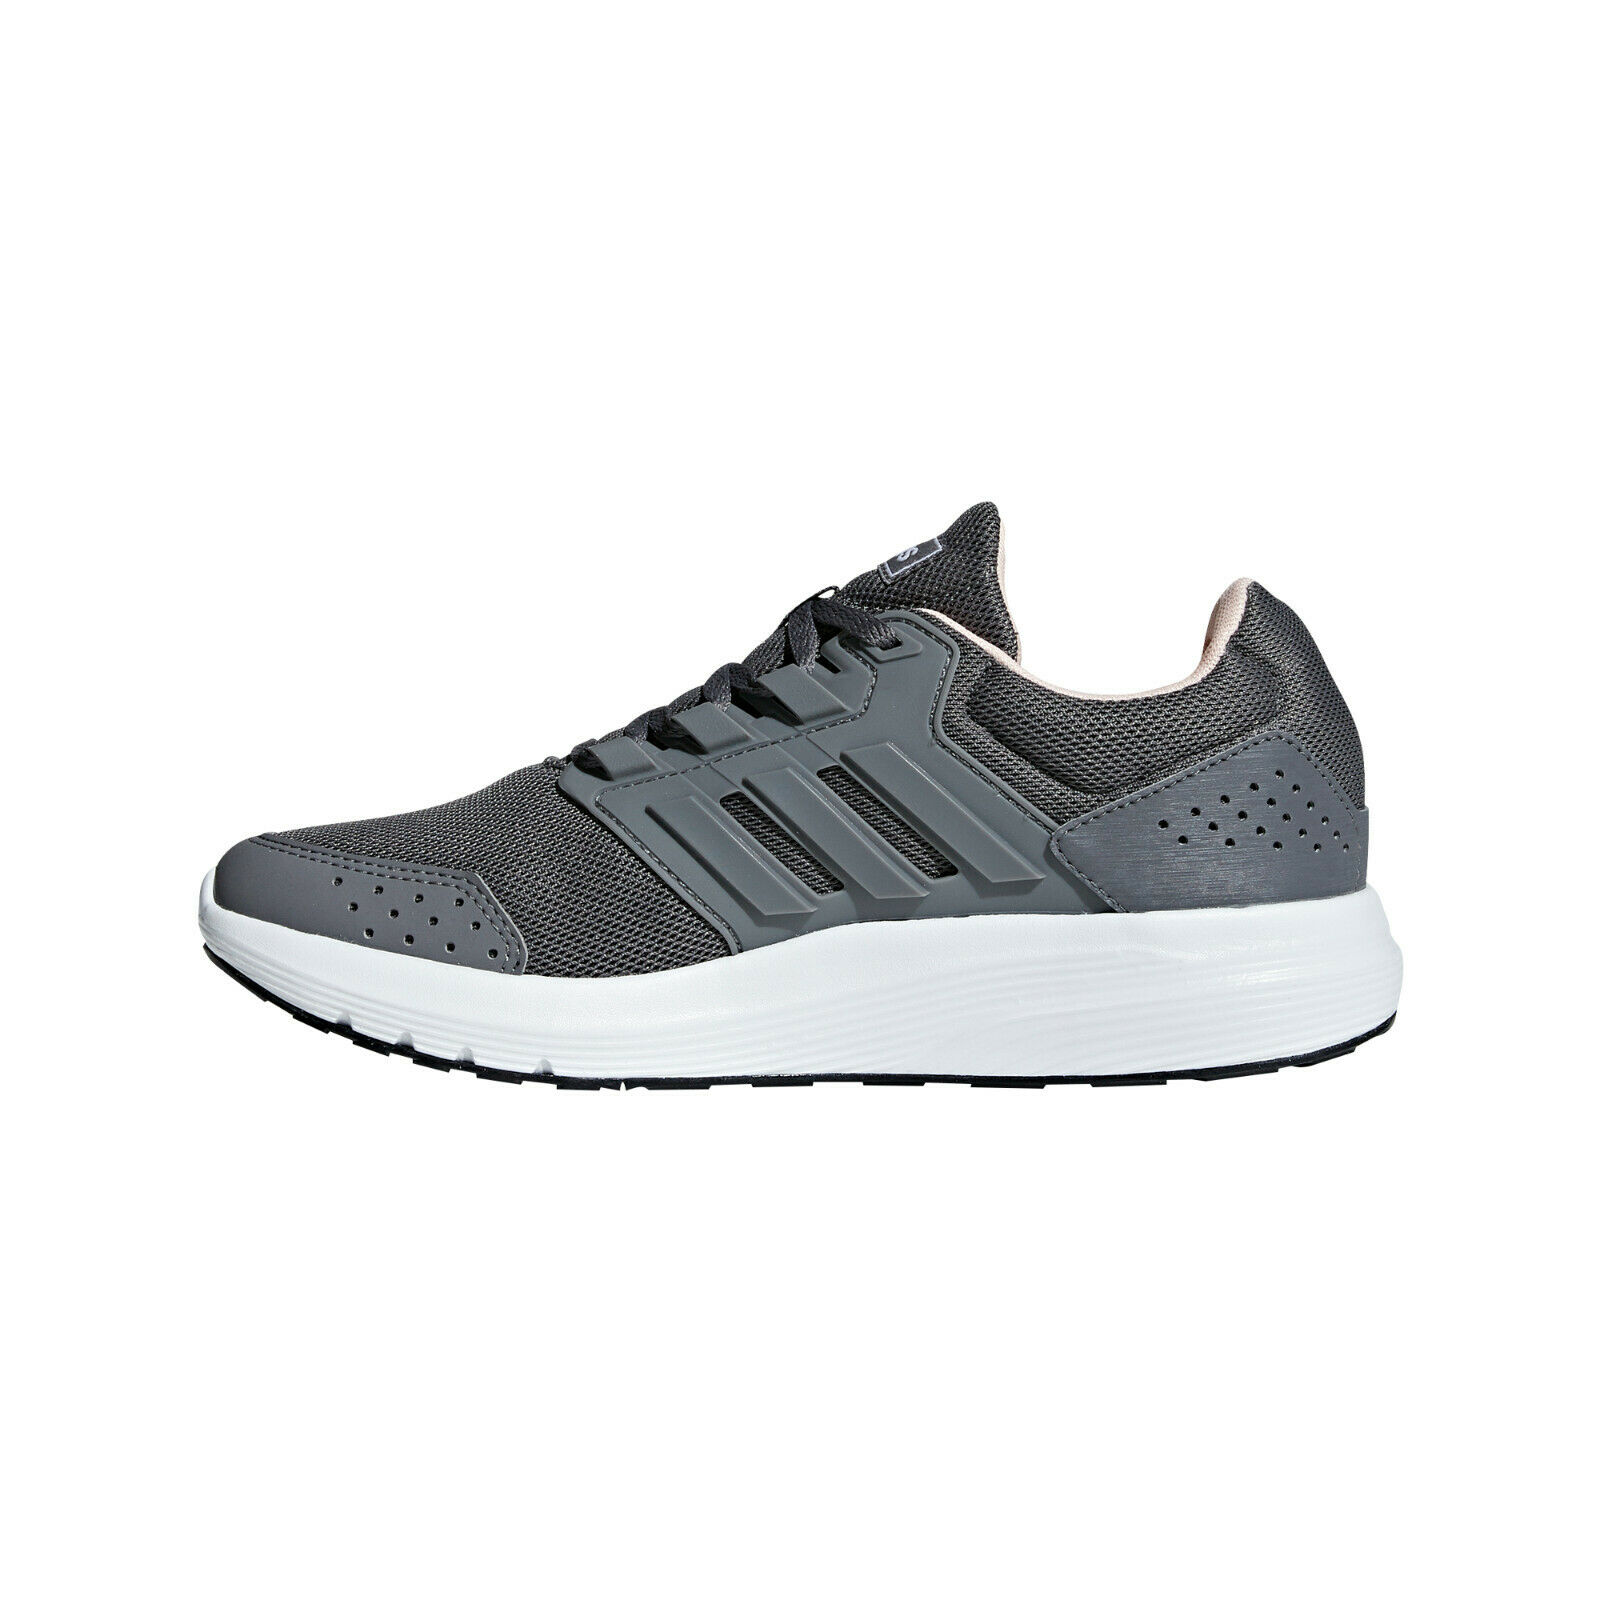 Adidas Womens Running shoes  Galaxy 4 Training Fashion Gym F36181 NEW  100% free shipping